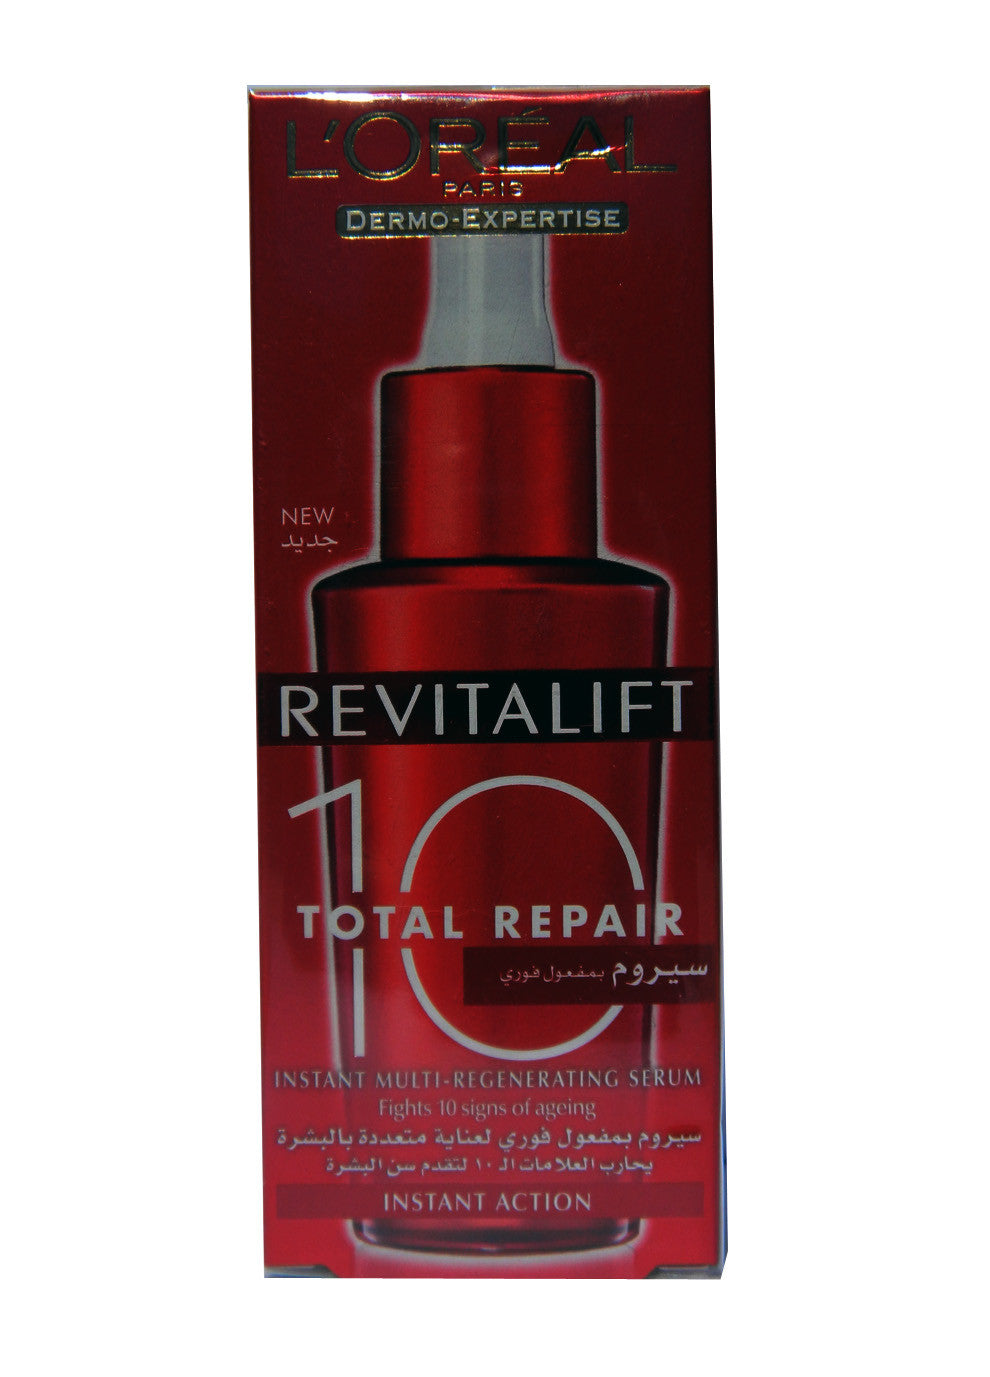 L'Oreal Revitalift Instant Multi-Regenerating Serum 30ml